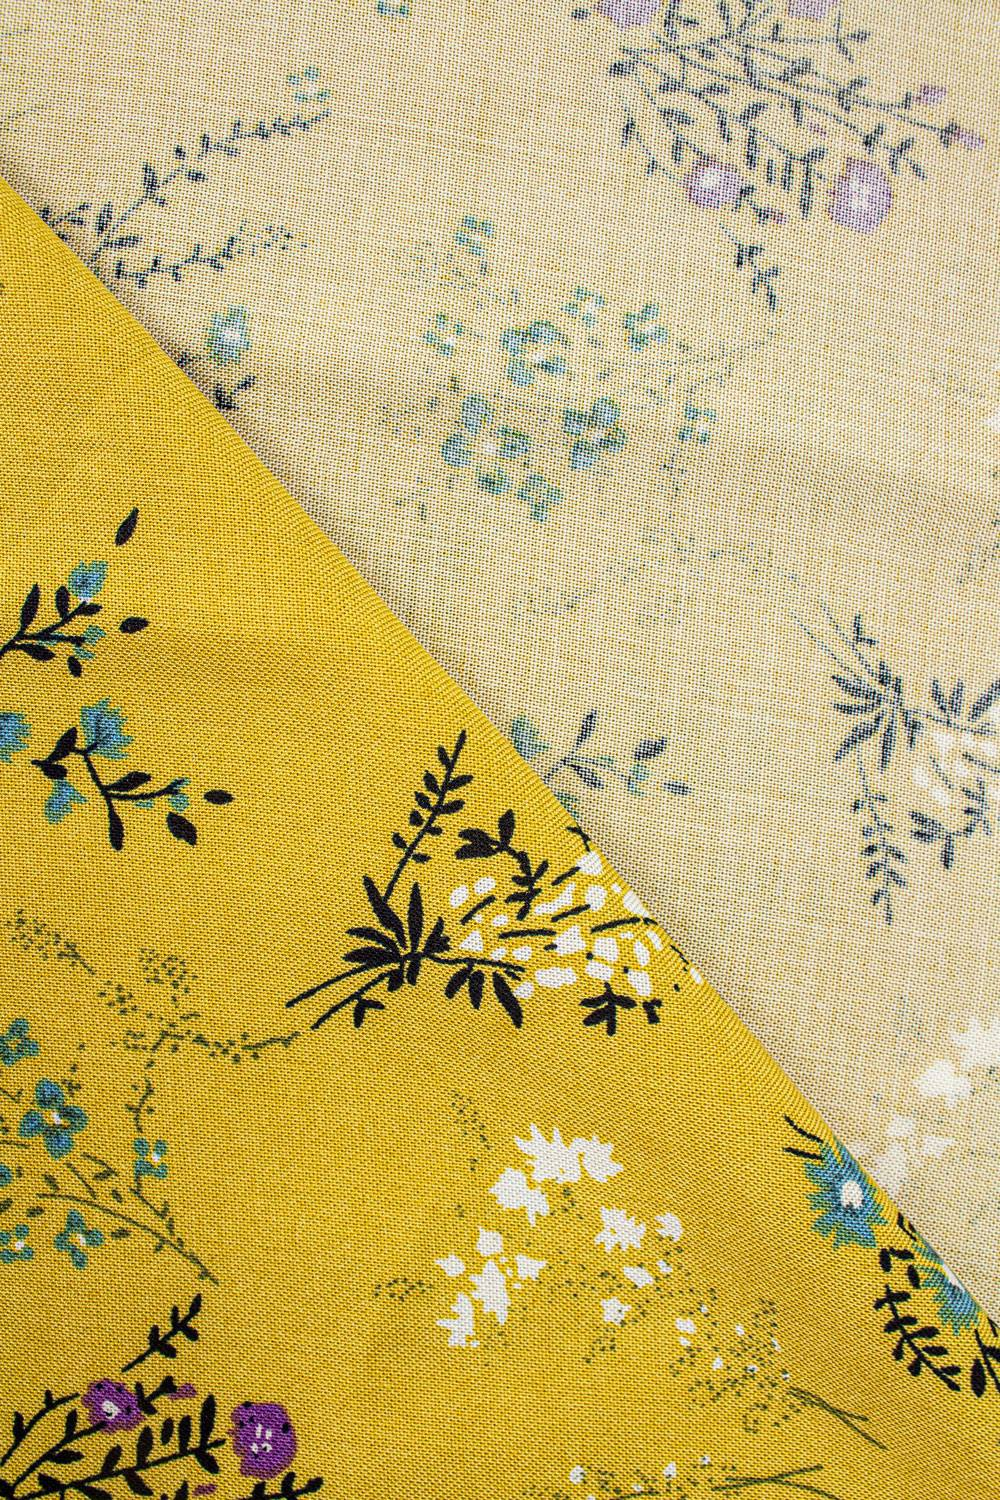 Fabric - Viscose - Yellow With Flowes - 140 cm - 130 g/m2